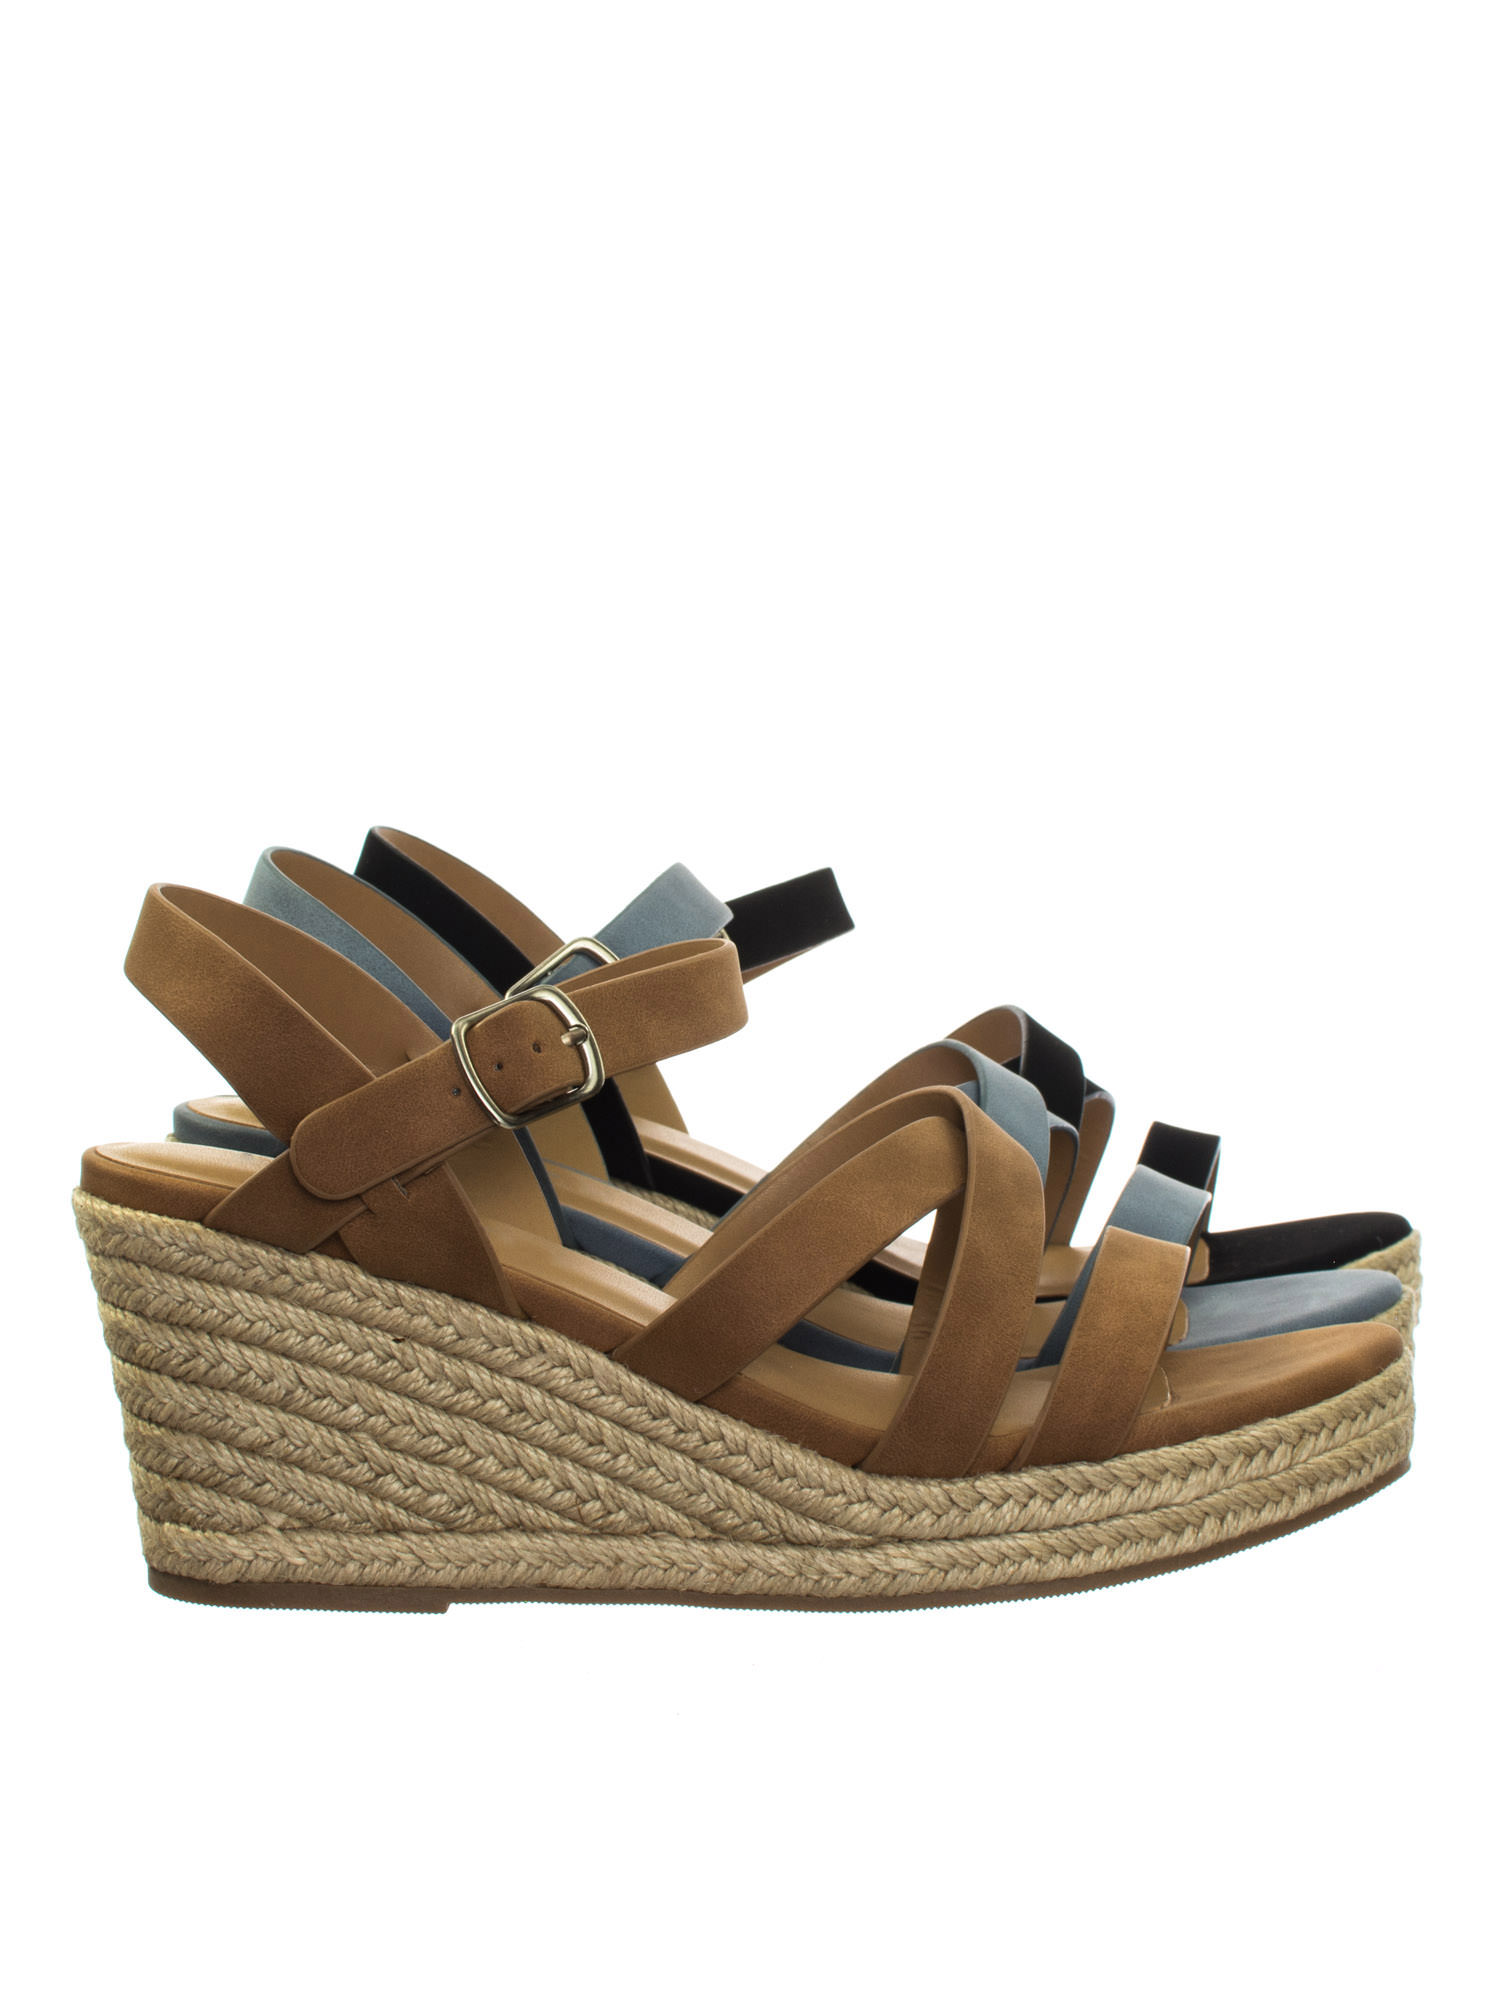 686993ed44ad Jubilee Tan Brown by City Classified Espadrille Rope Jute Wrap Platform  Wedge Open Toe Dress Sandal